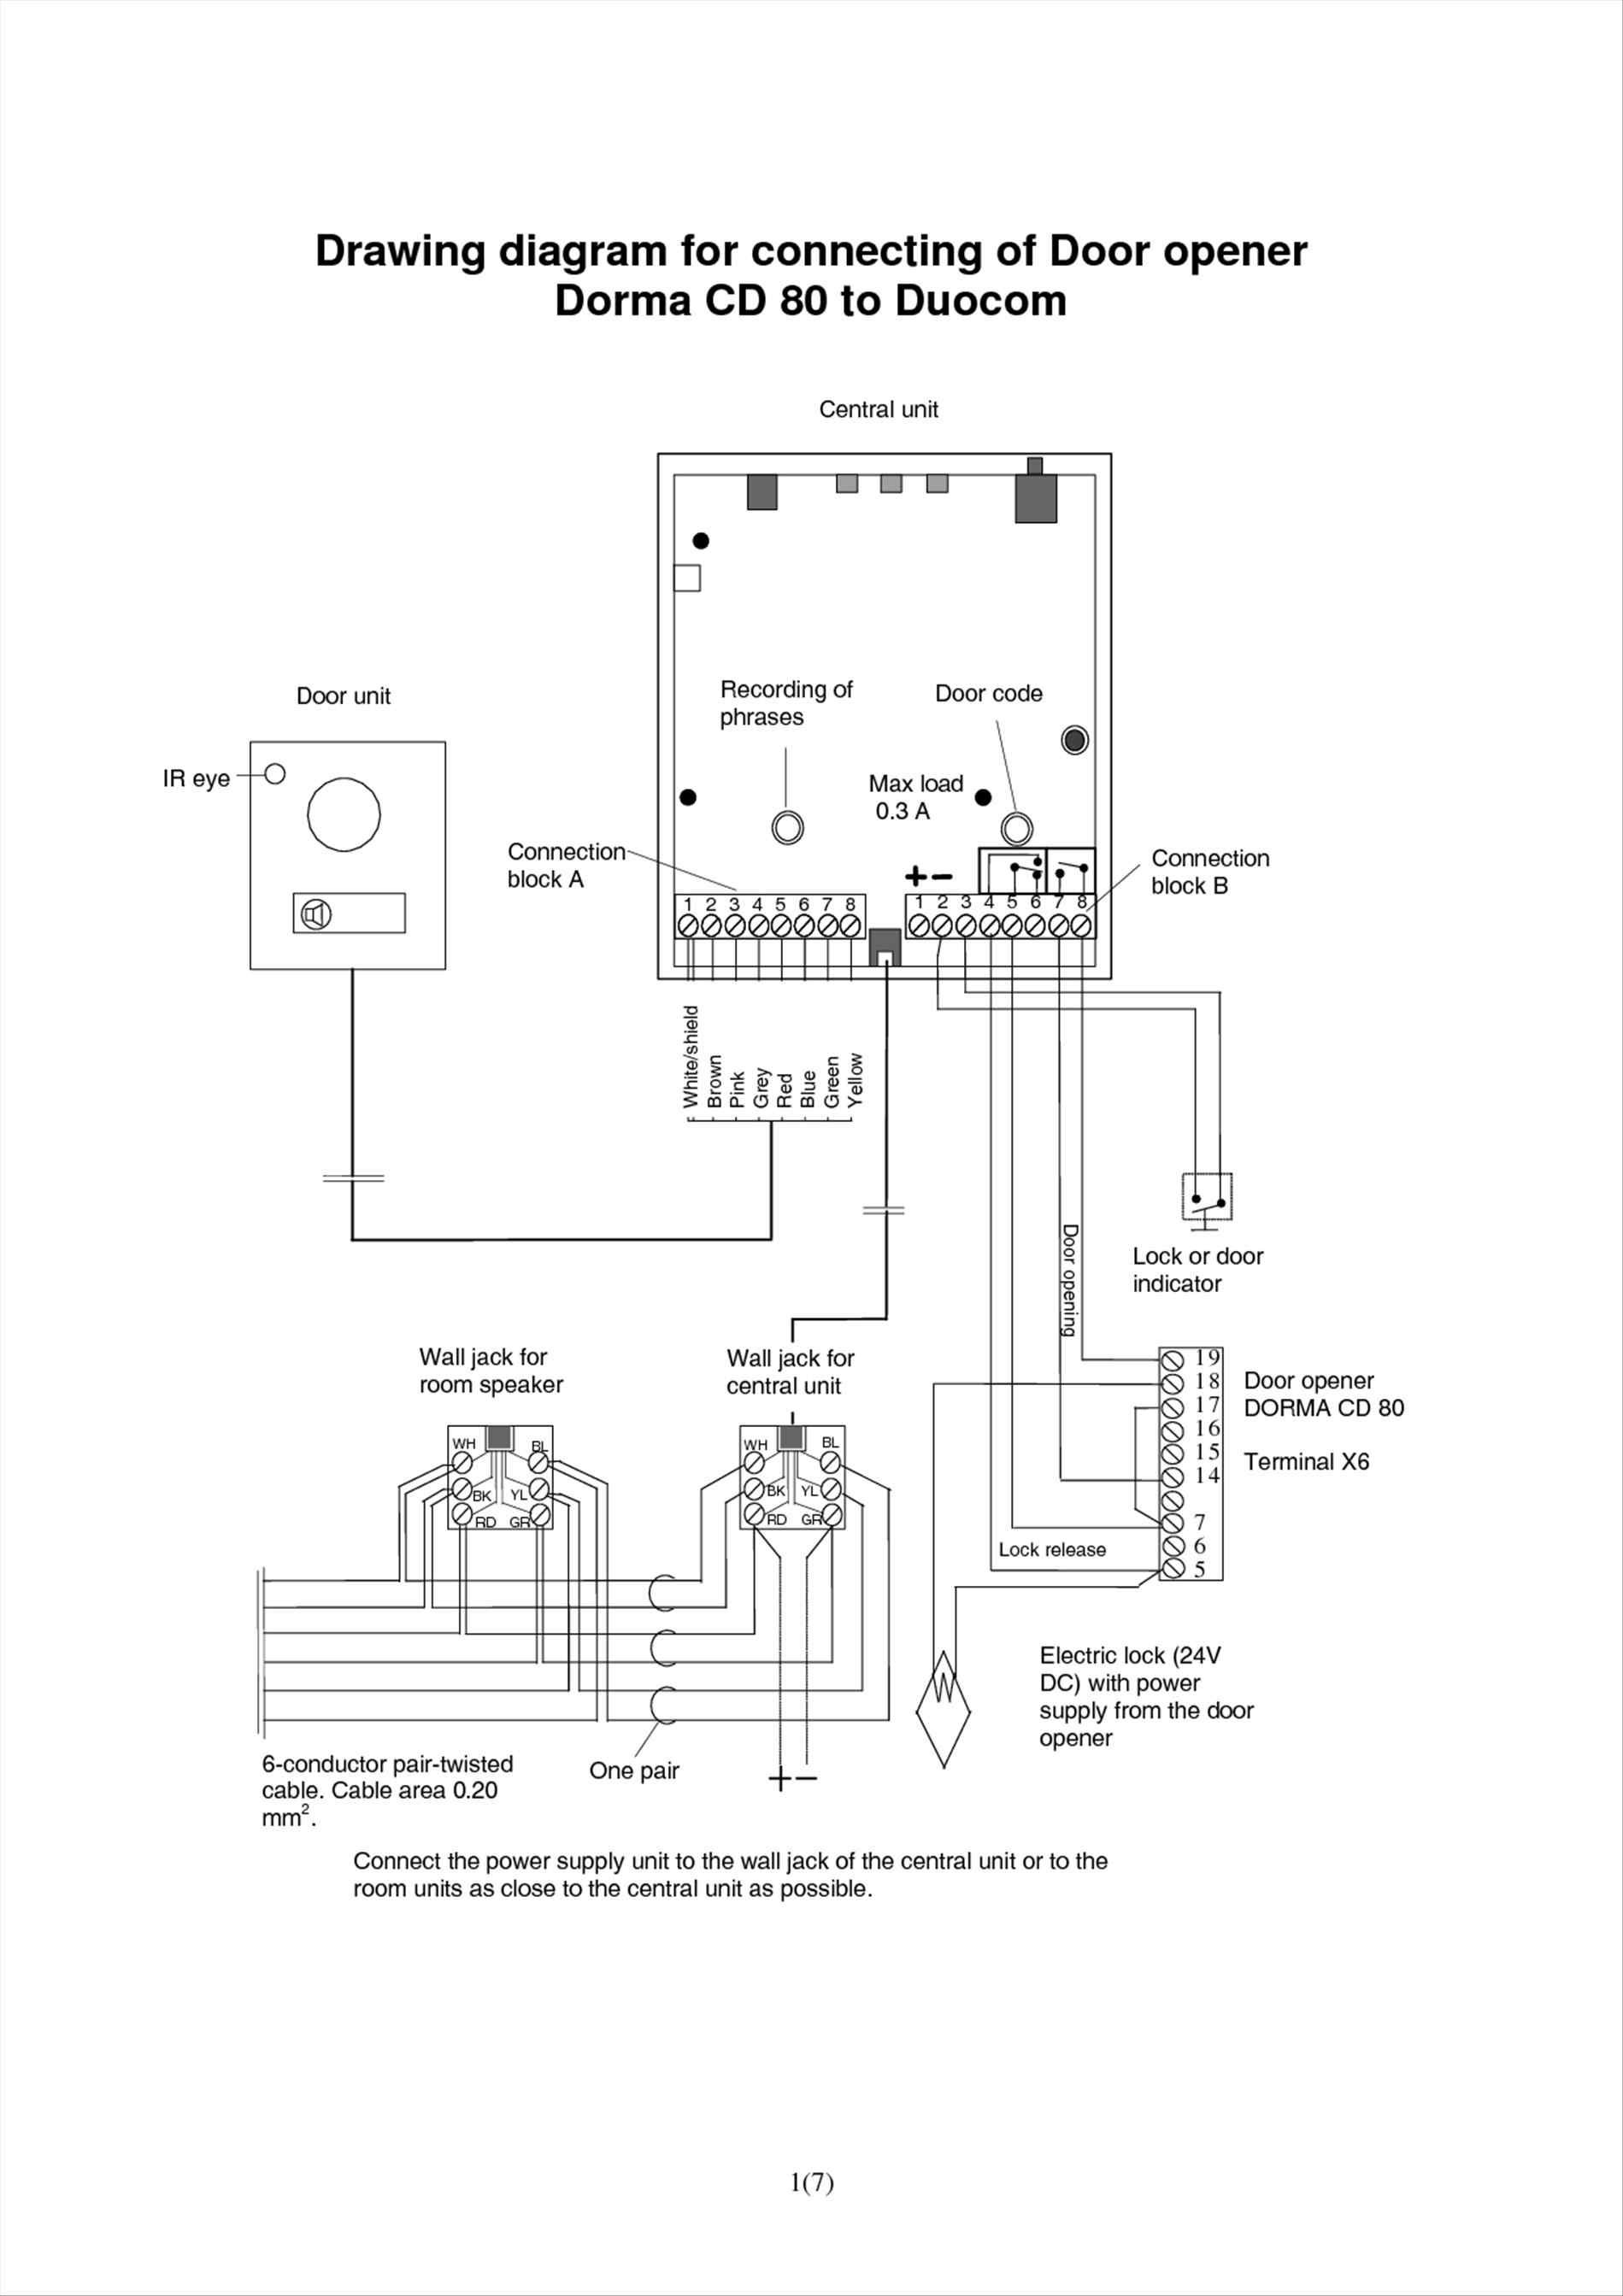 Cctv Balun Wiring Diagram Cat5 Cctv Wiring Diagram Sample Of Cctv Balun Wiring Diagram